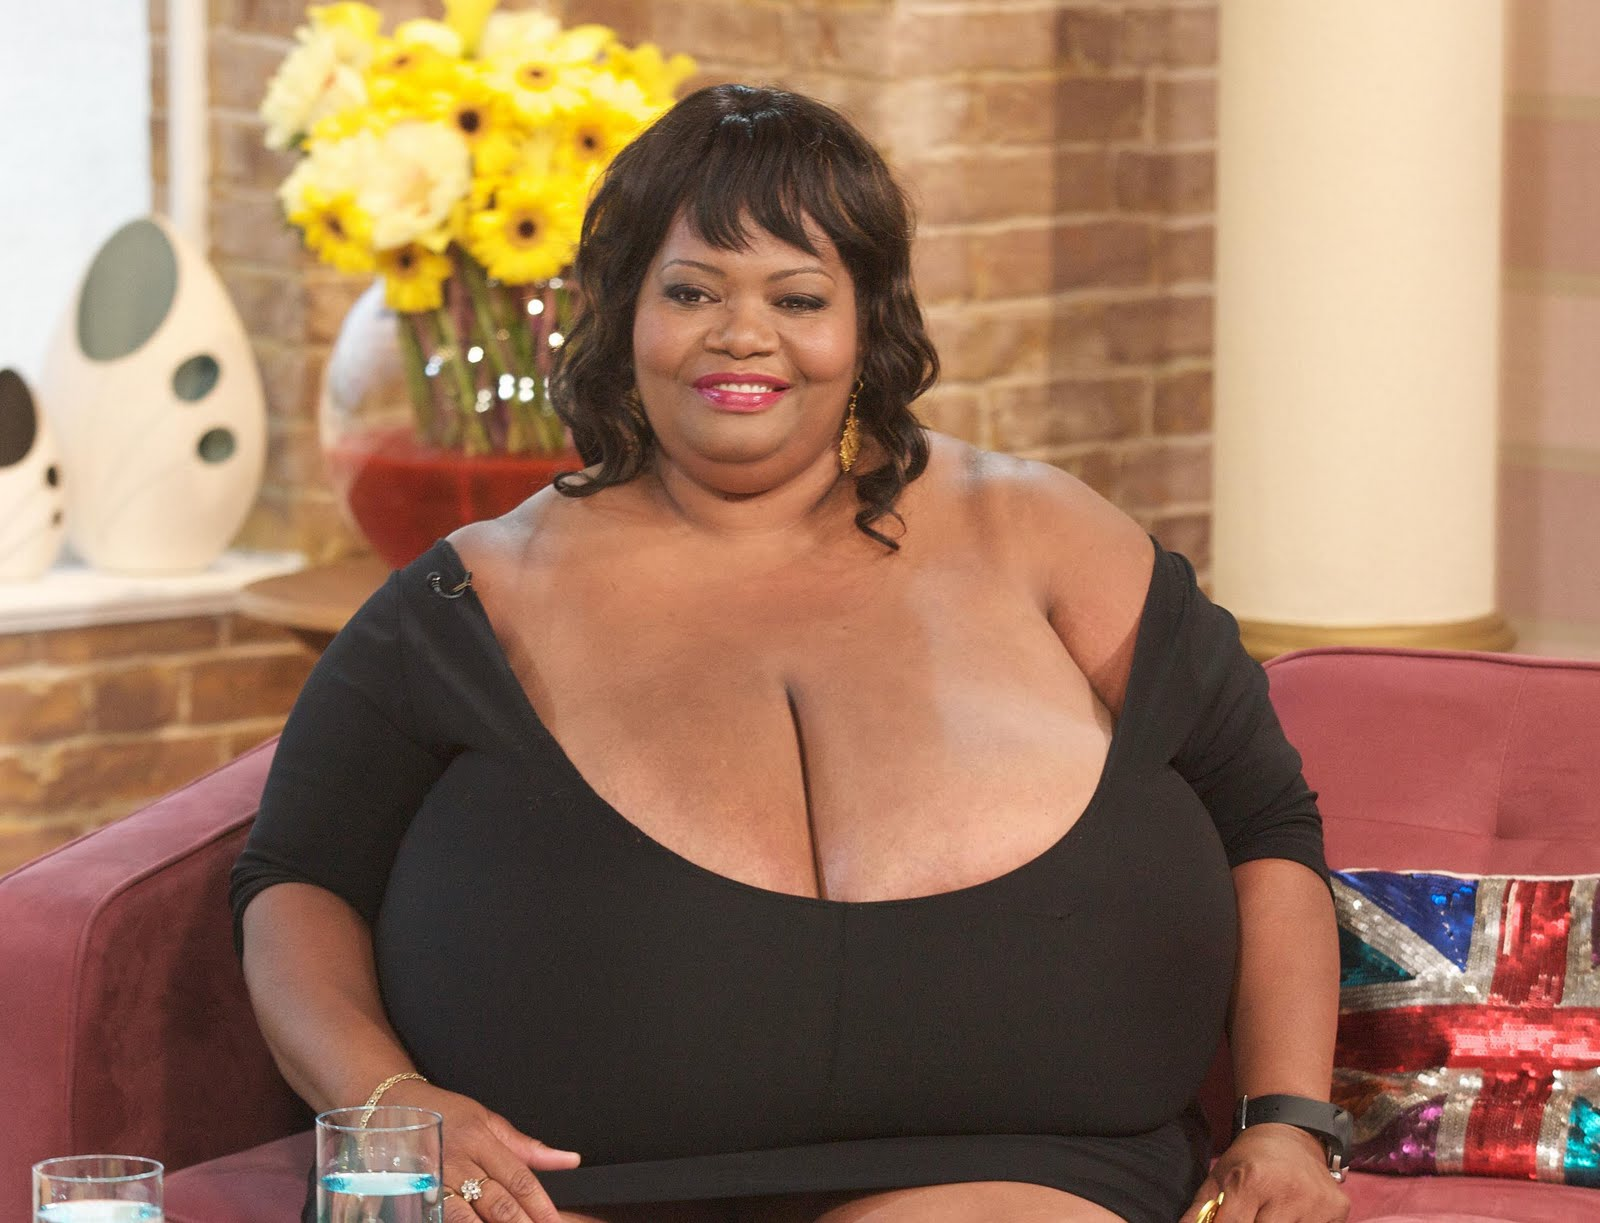 The Worlds Largest Woman 76